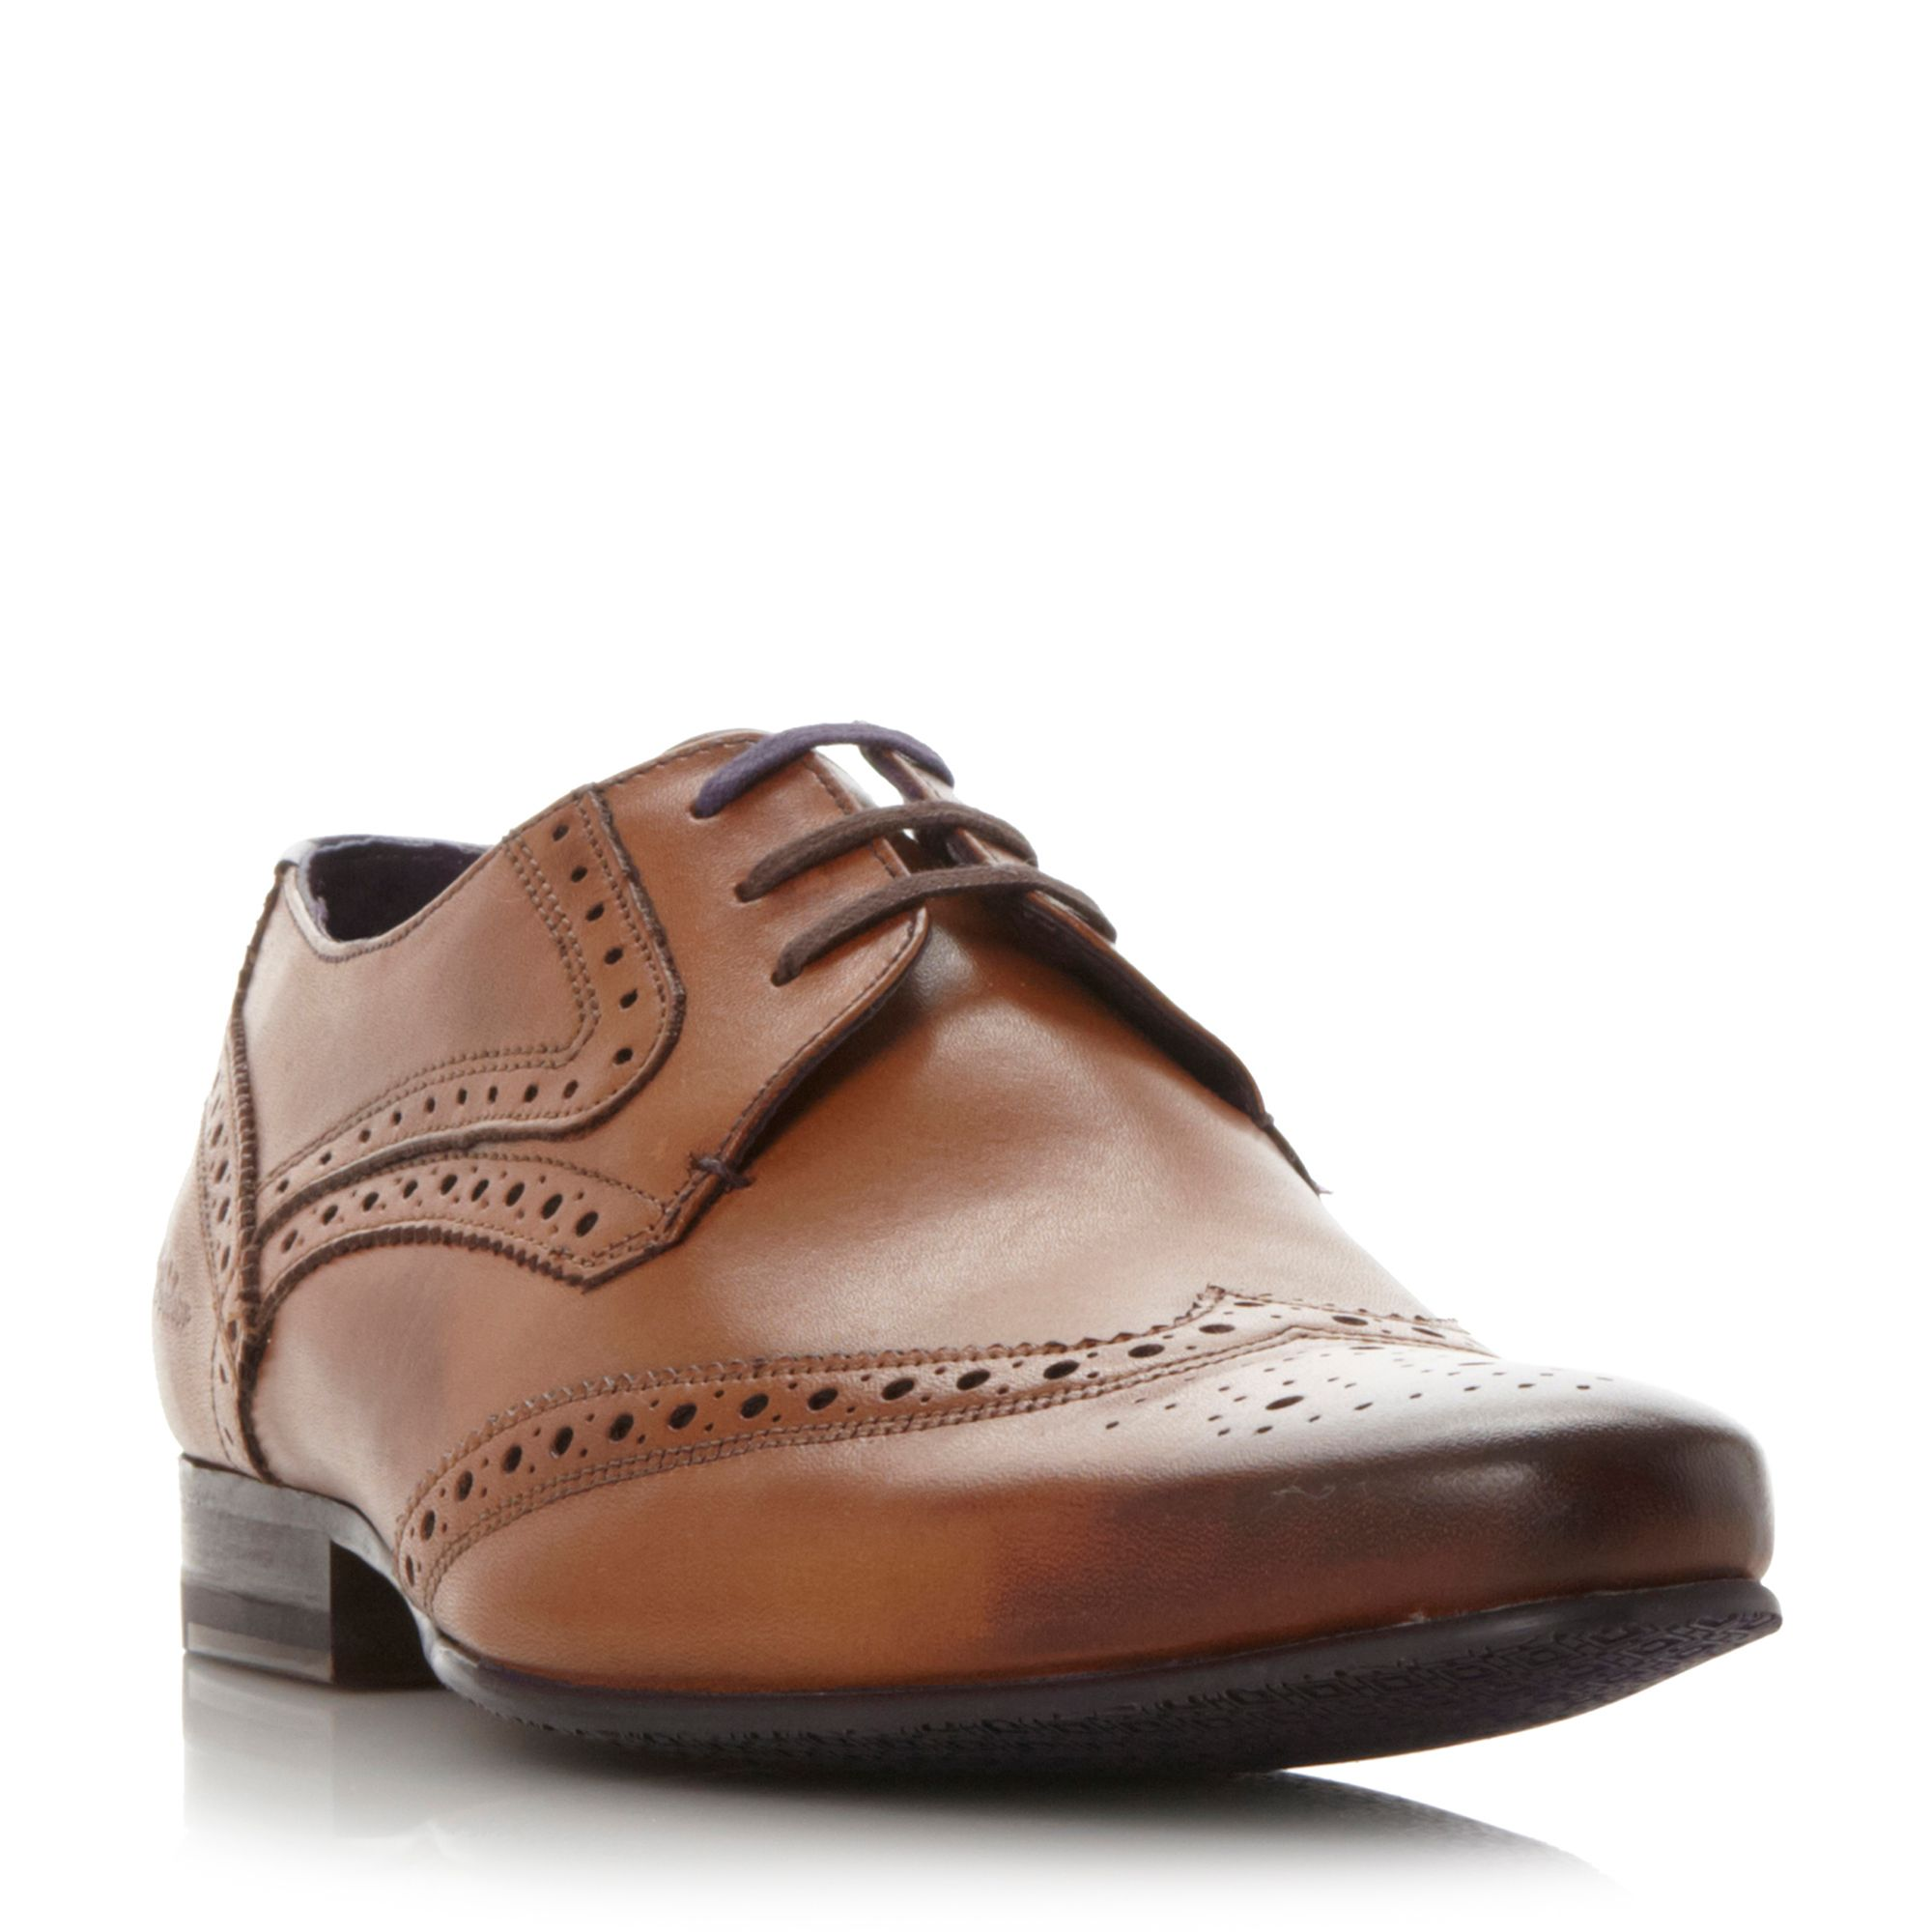 Ted Baker Hann brogue lace up shoes Tan